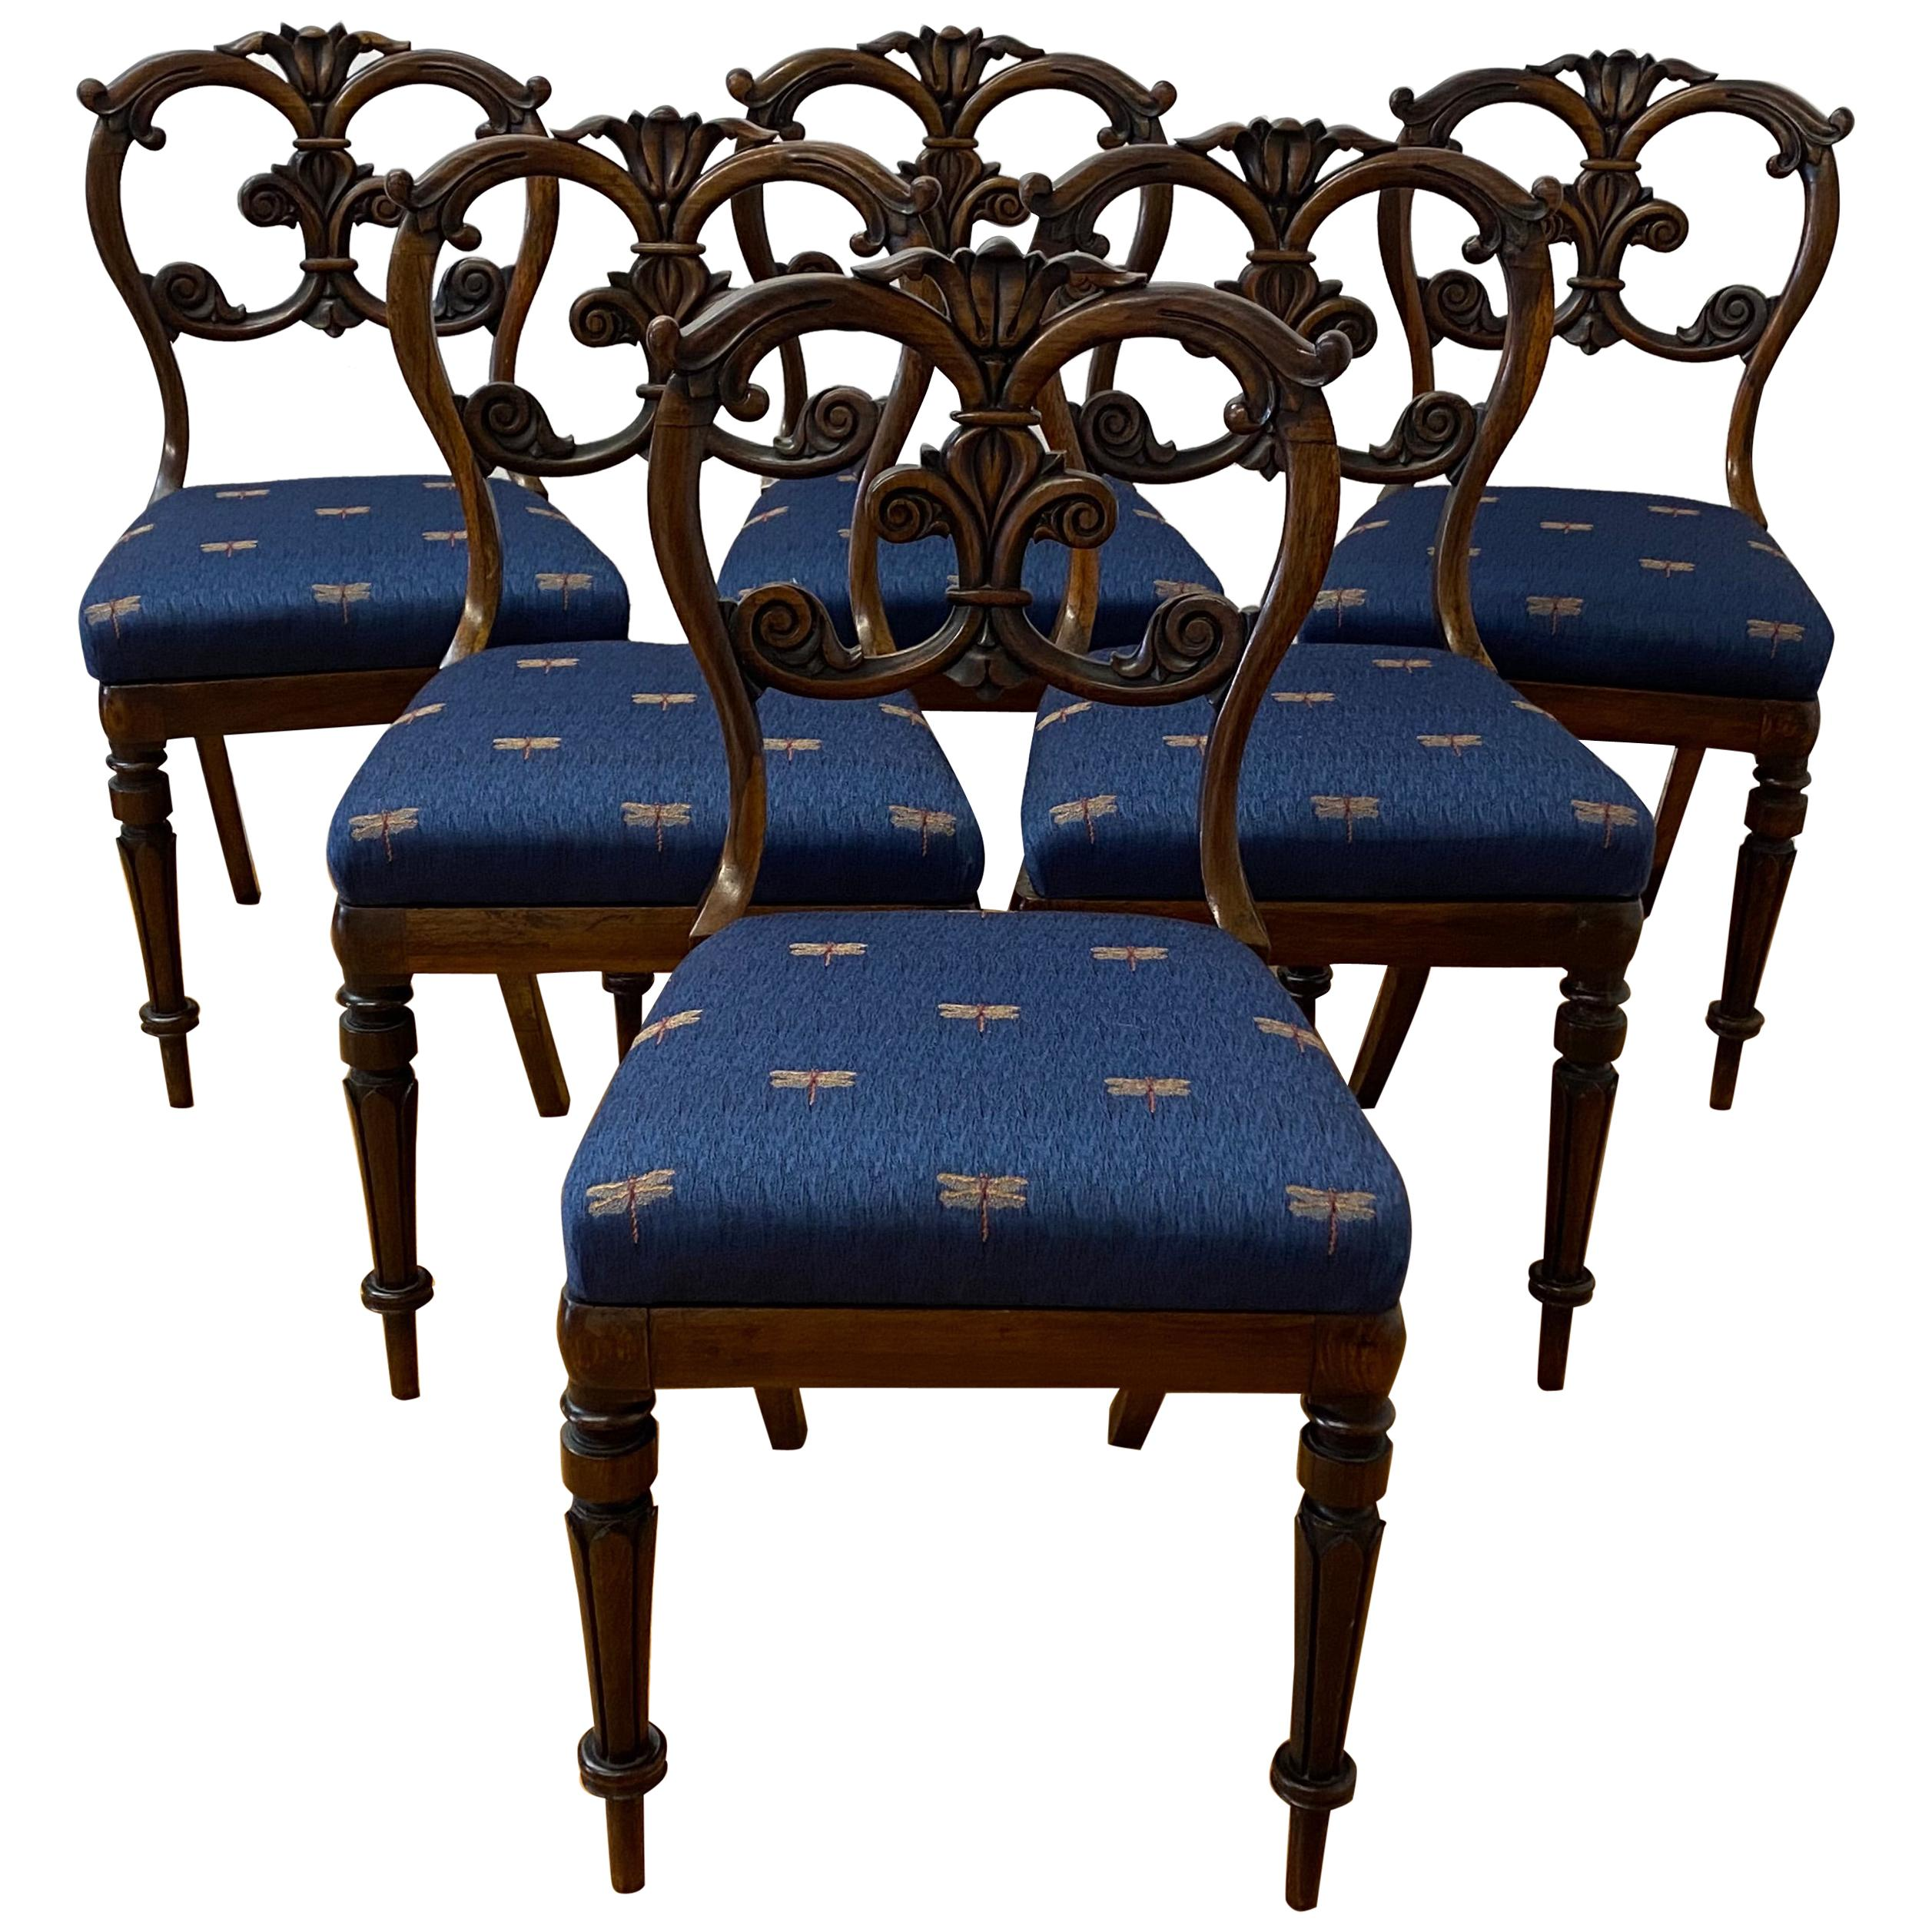 Set of Six English Carved Rosewood Dining Chairs, C.1850